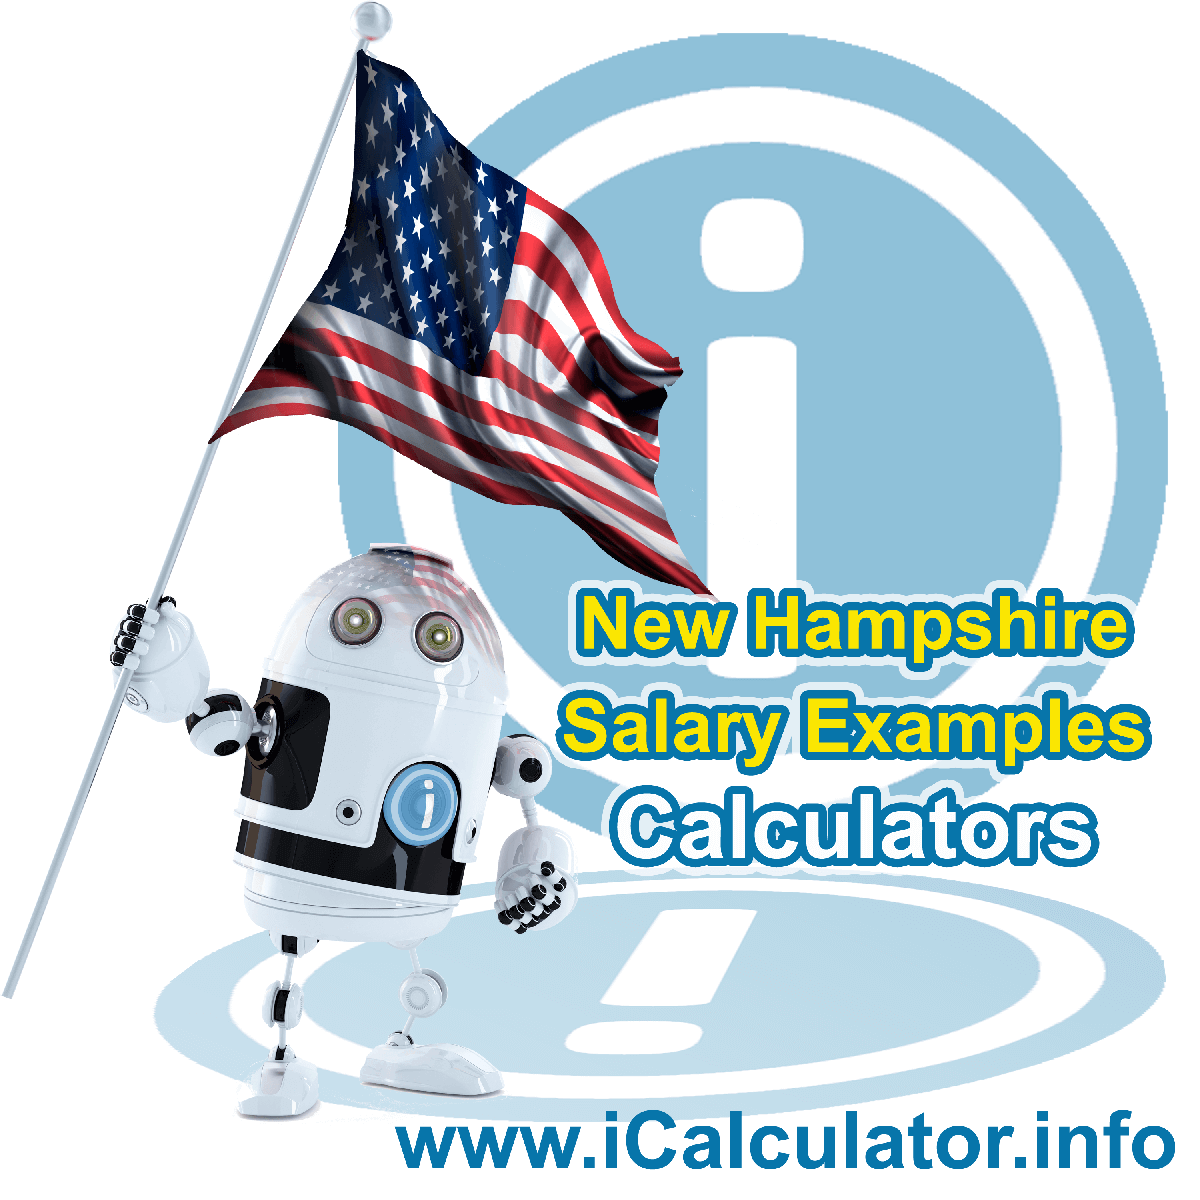 New Hampshire Salary Example for $30,000.00 in 2020 | iCalculator | $30,000.00 salary example for employee and employer paying New Hampshire State tincome taxes. Detailed salary after tax calculation including New Hampshire State Tax, Federal State Tax, Medicare Deductions, Social Security, Capital Gains and other income tax and salary deductions complete with supporting New Hampshire state tax tables